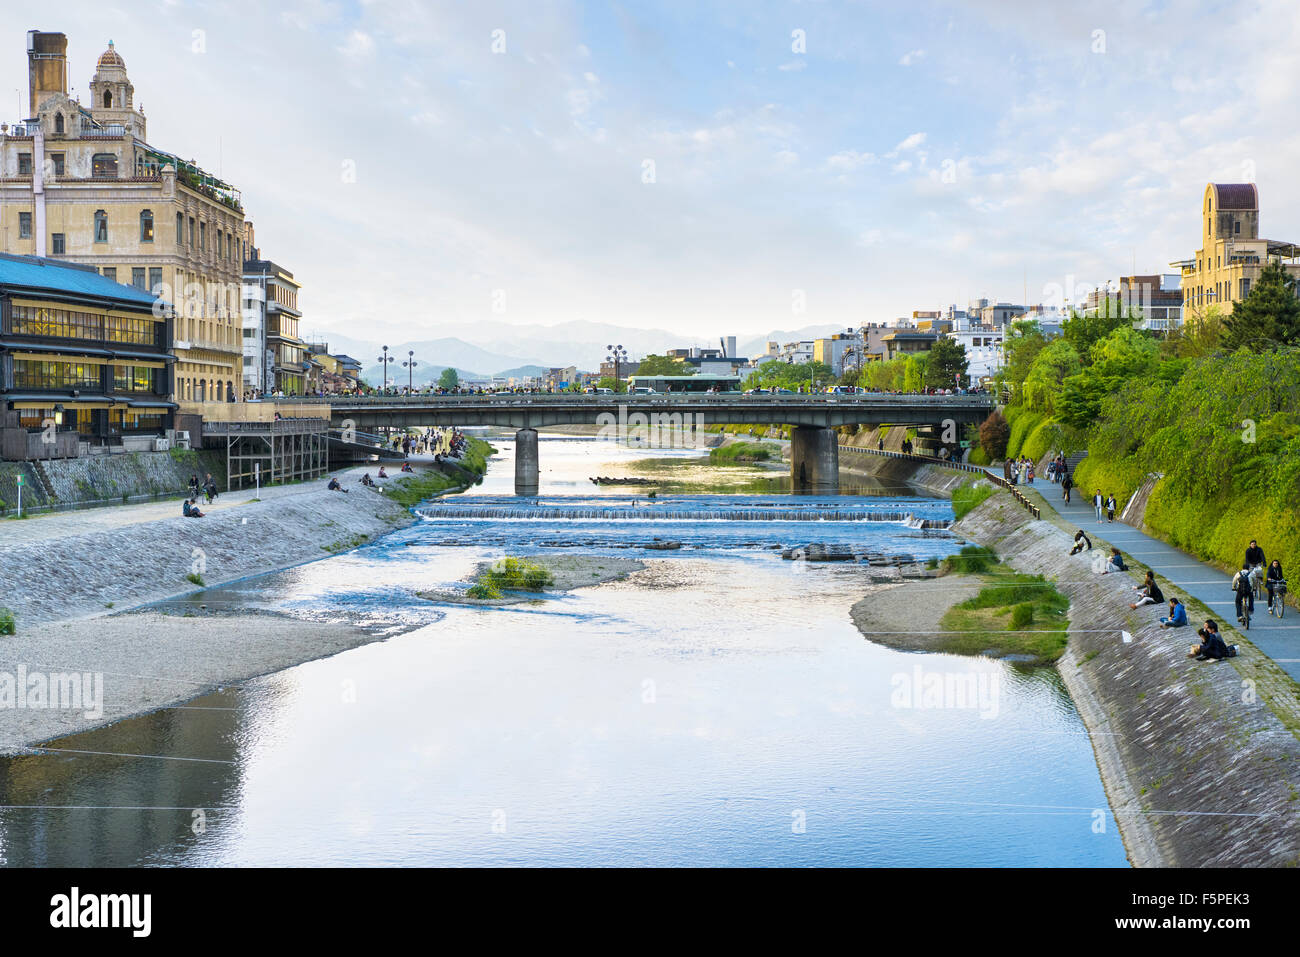 The Kamogawa River in central Kyoto Pontochou, Minami-za and Gion areas in the late afternoon - Stock Image